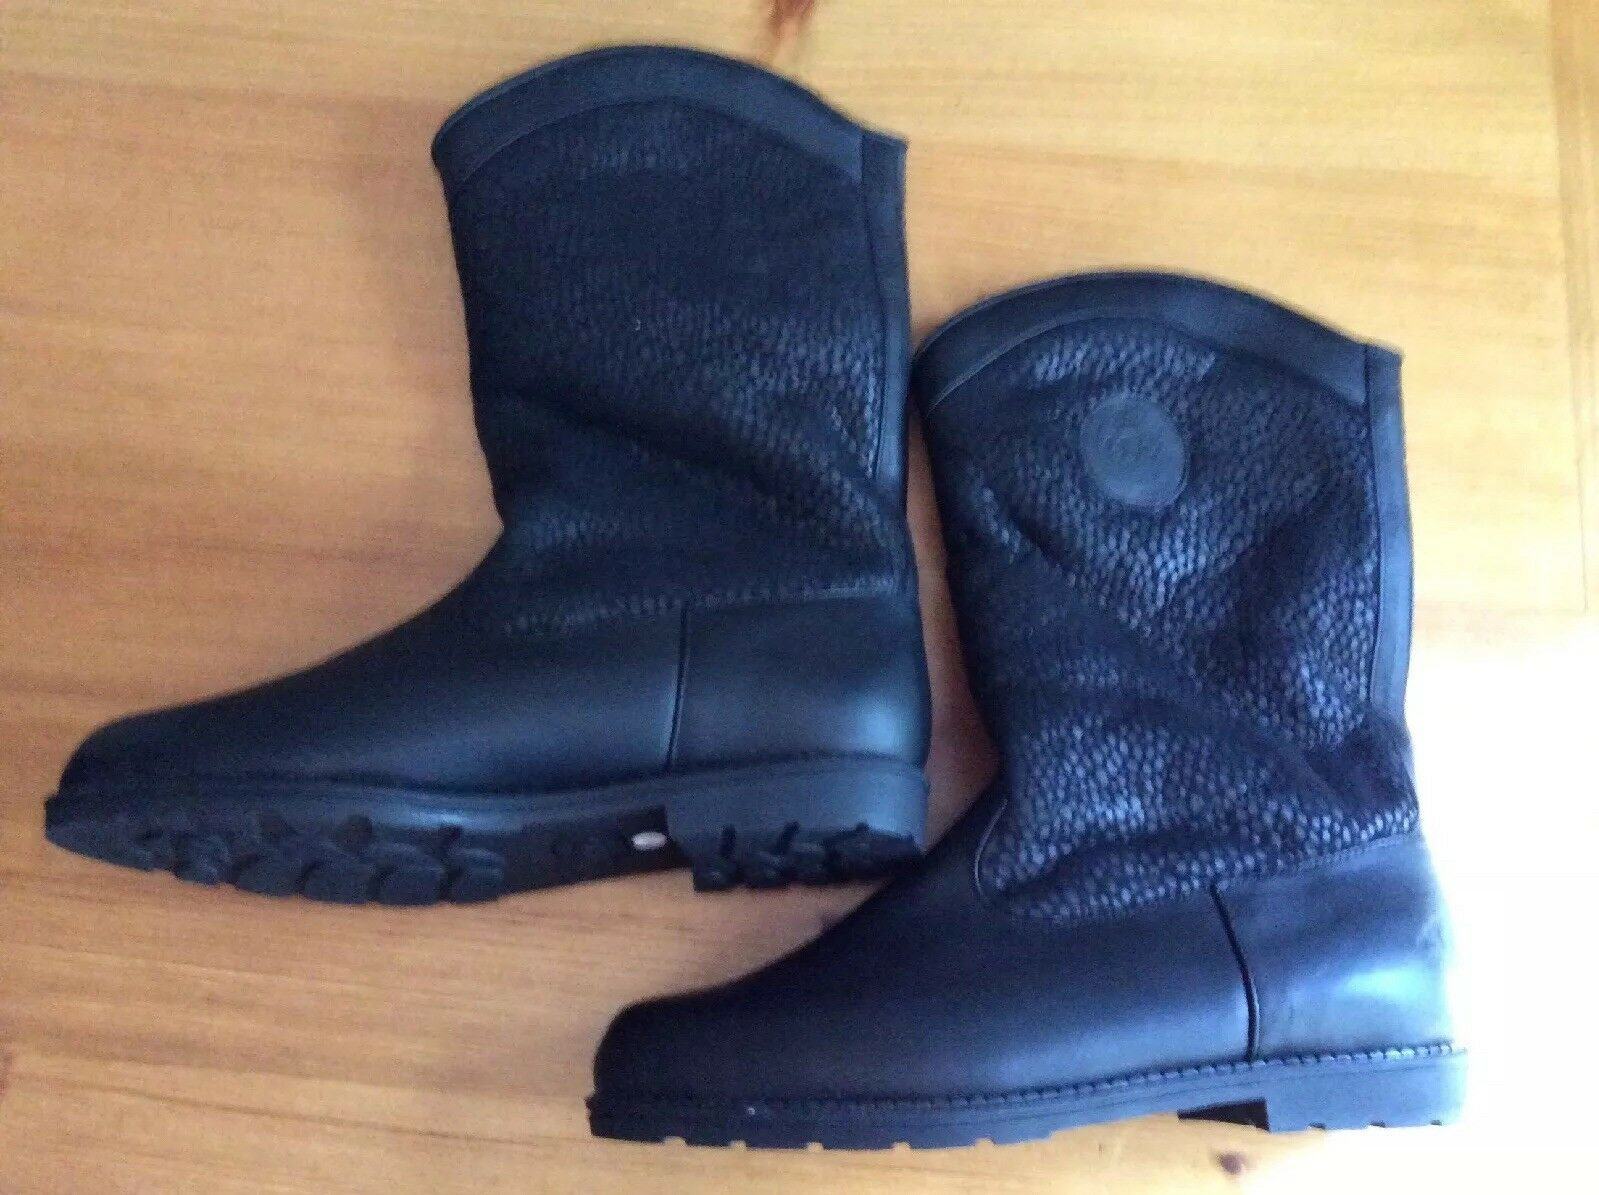 Terralam Australian Black Leather And And And Fleece Lined Women's Boots Size 7.5 68cdaf